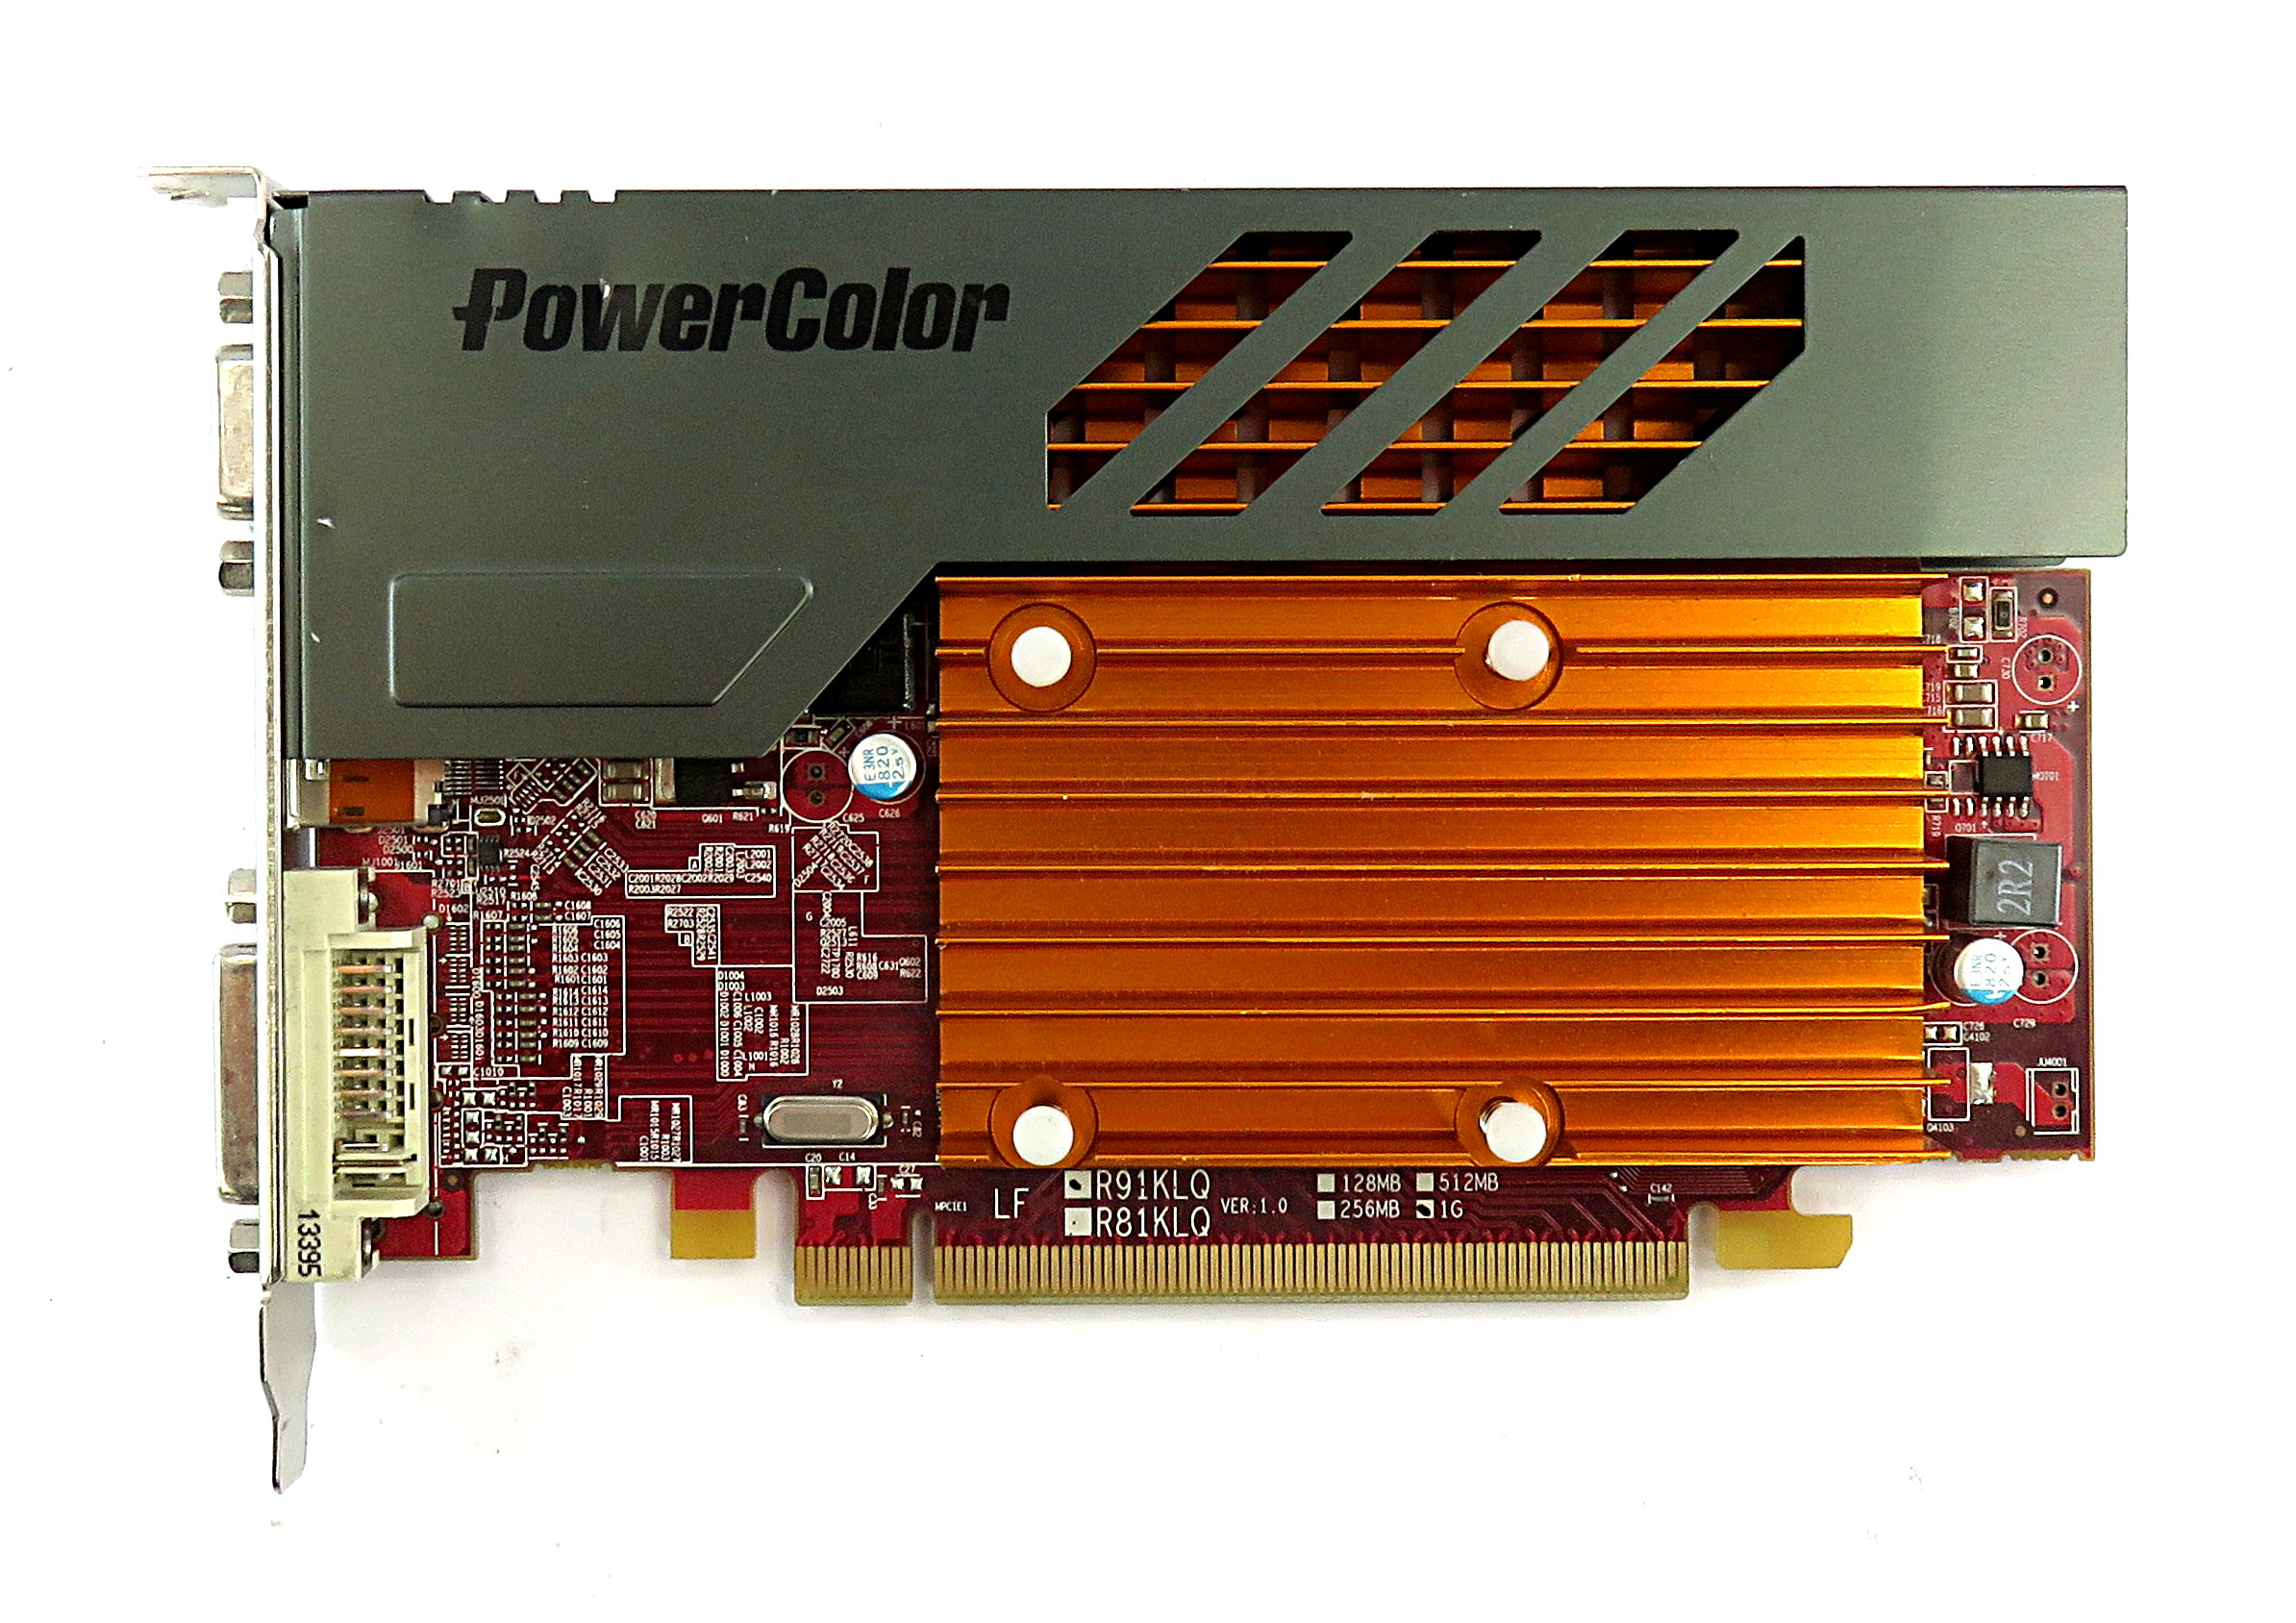 PowerColor Radeon AX6450 1GBK3-SD 1GB DDR3 HDMI/DVI/VGA Silent PCIe Graphic Card